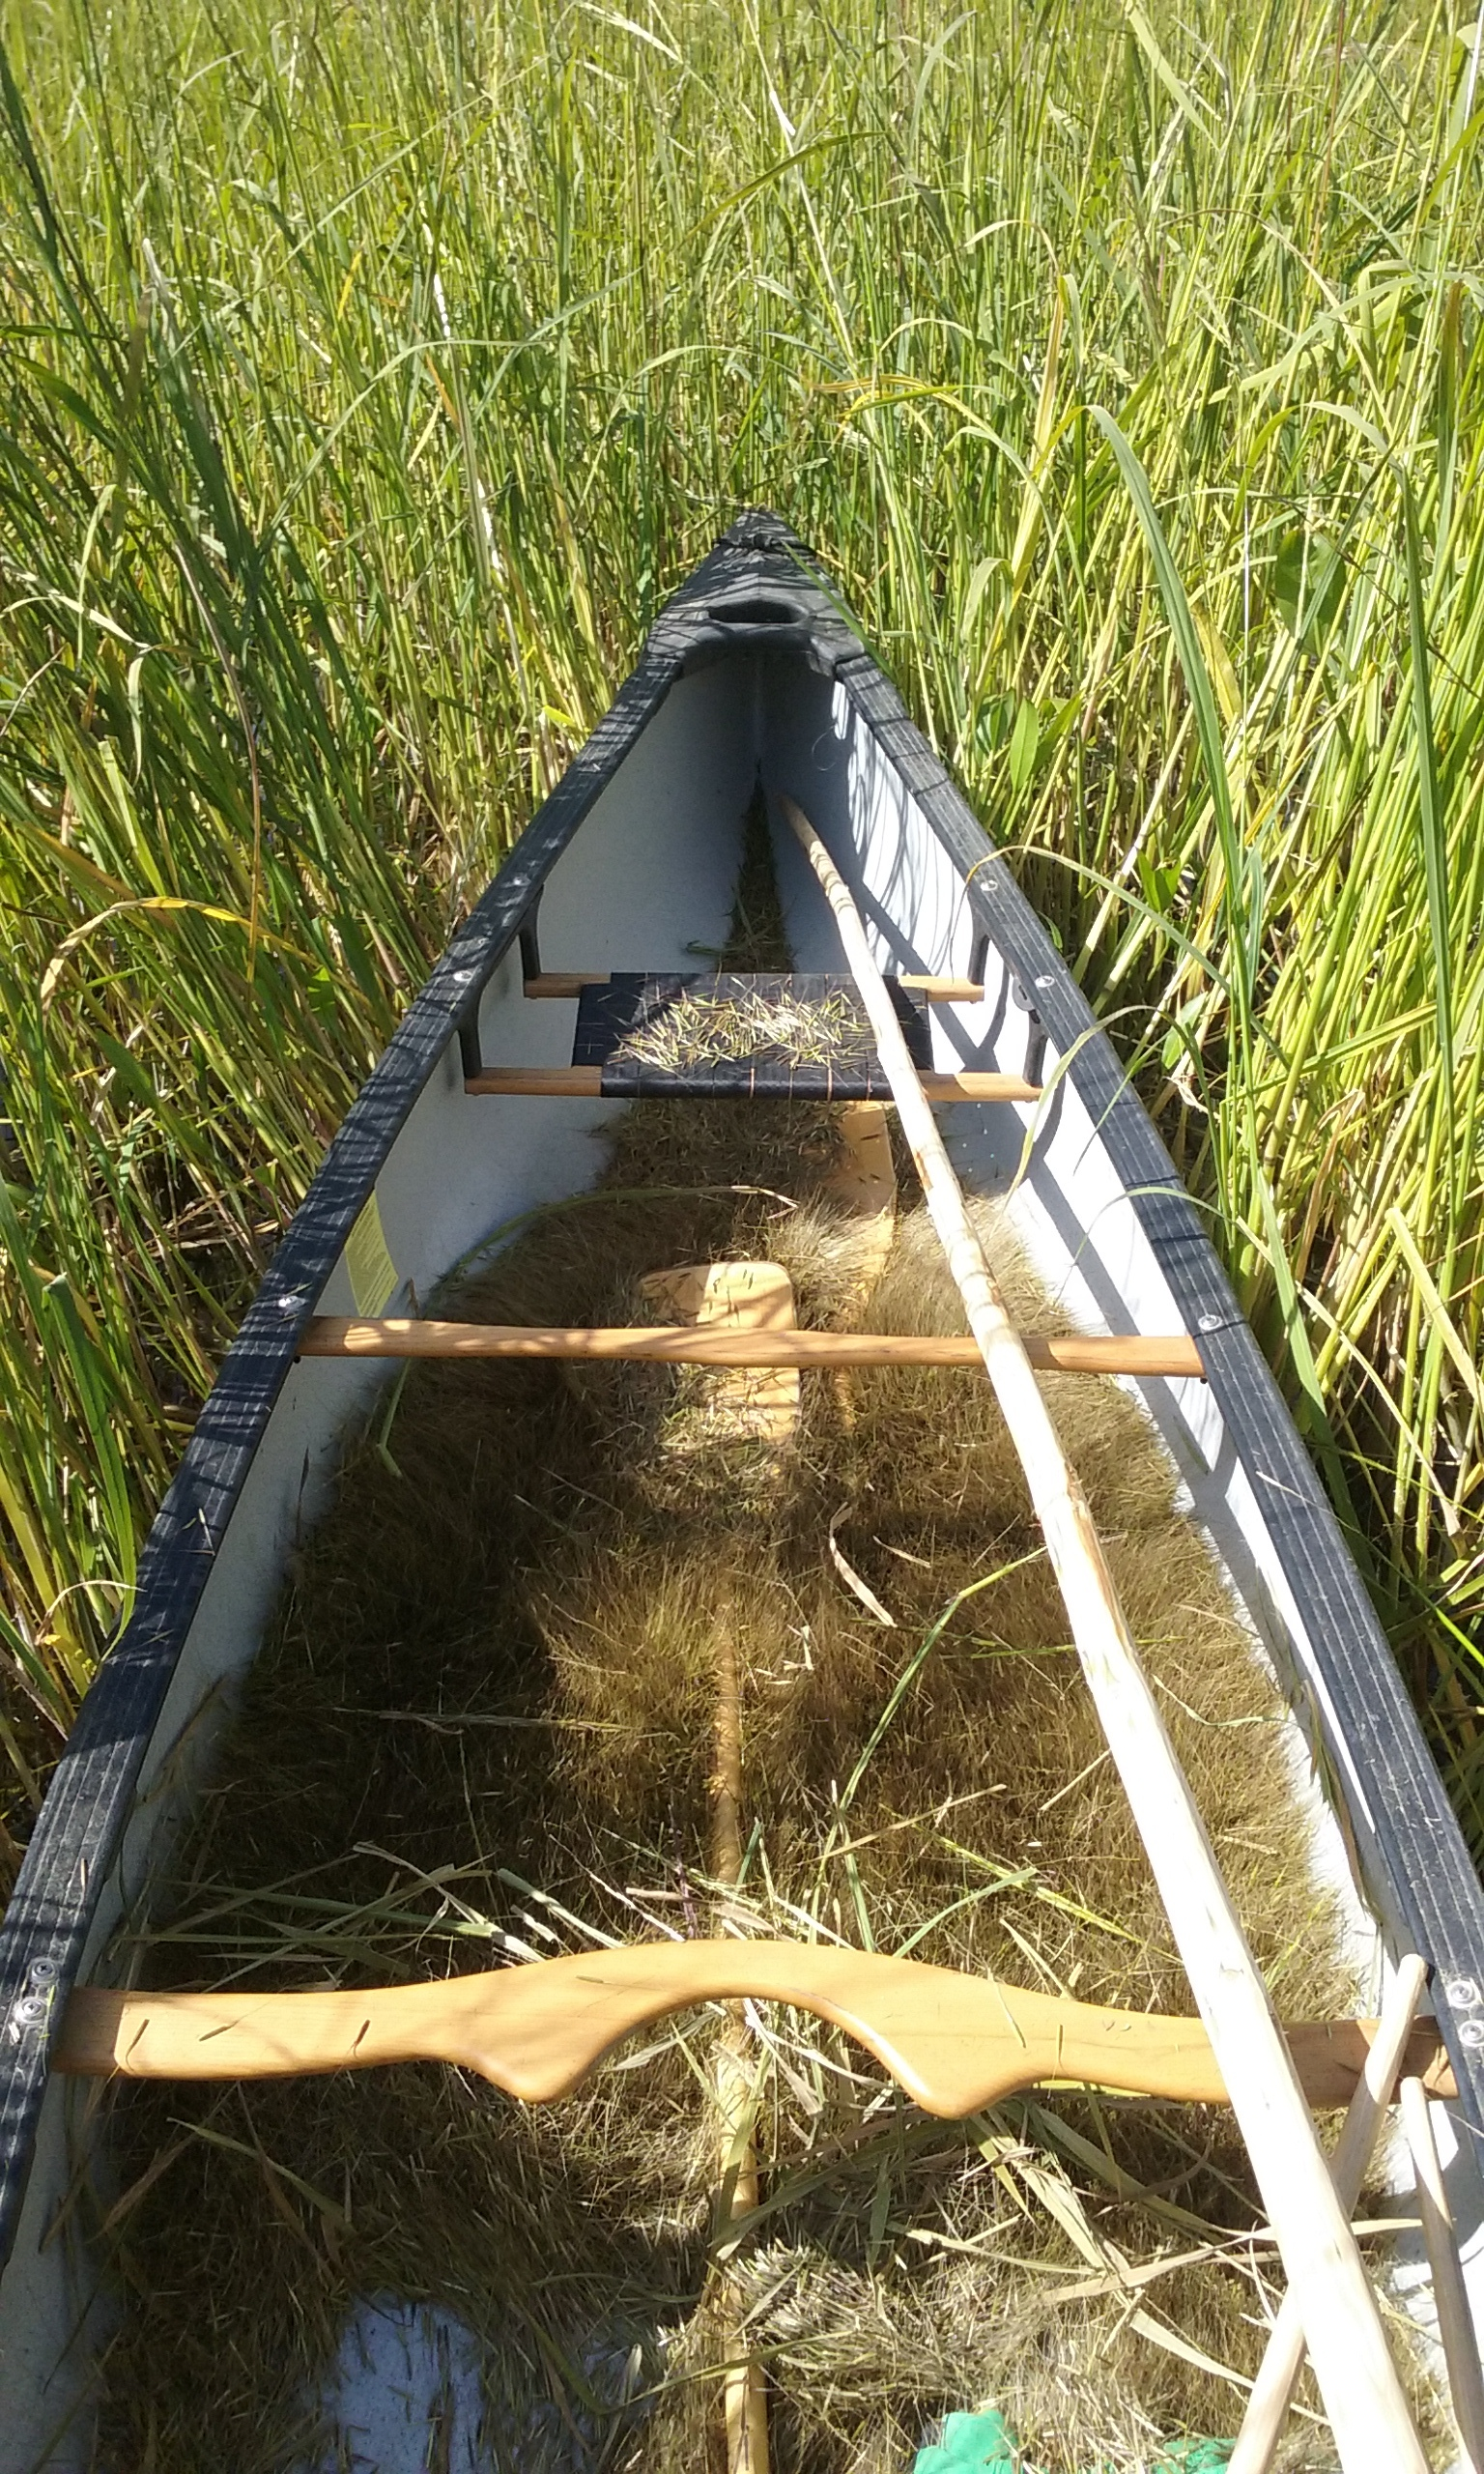 Traditional Wild Rice Harvest = Sustainable Healthy Food From the Land